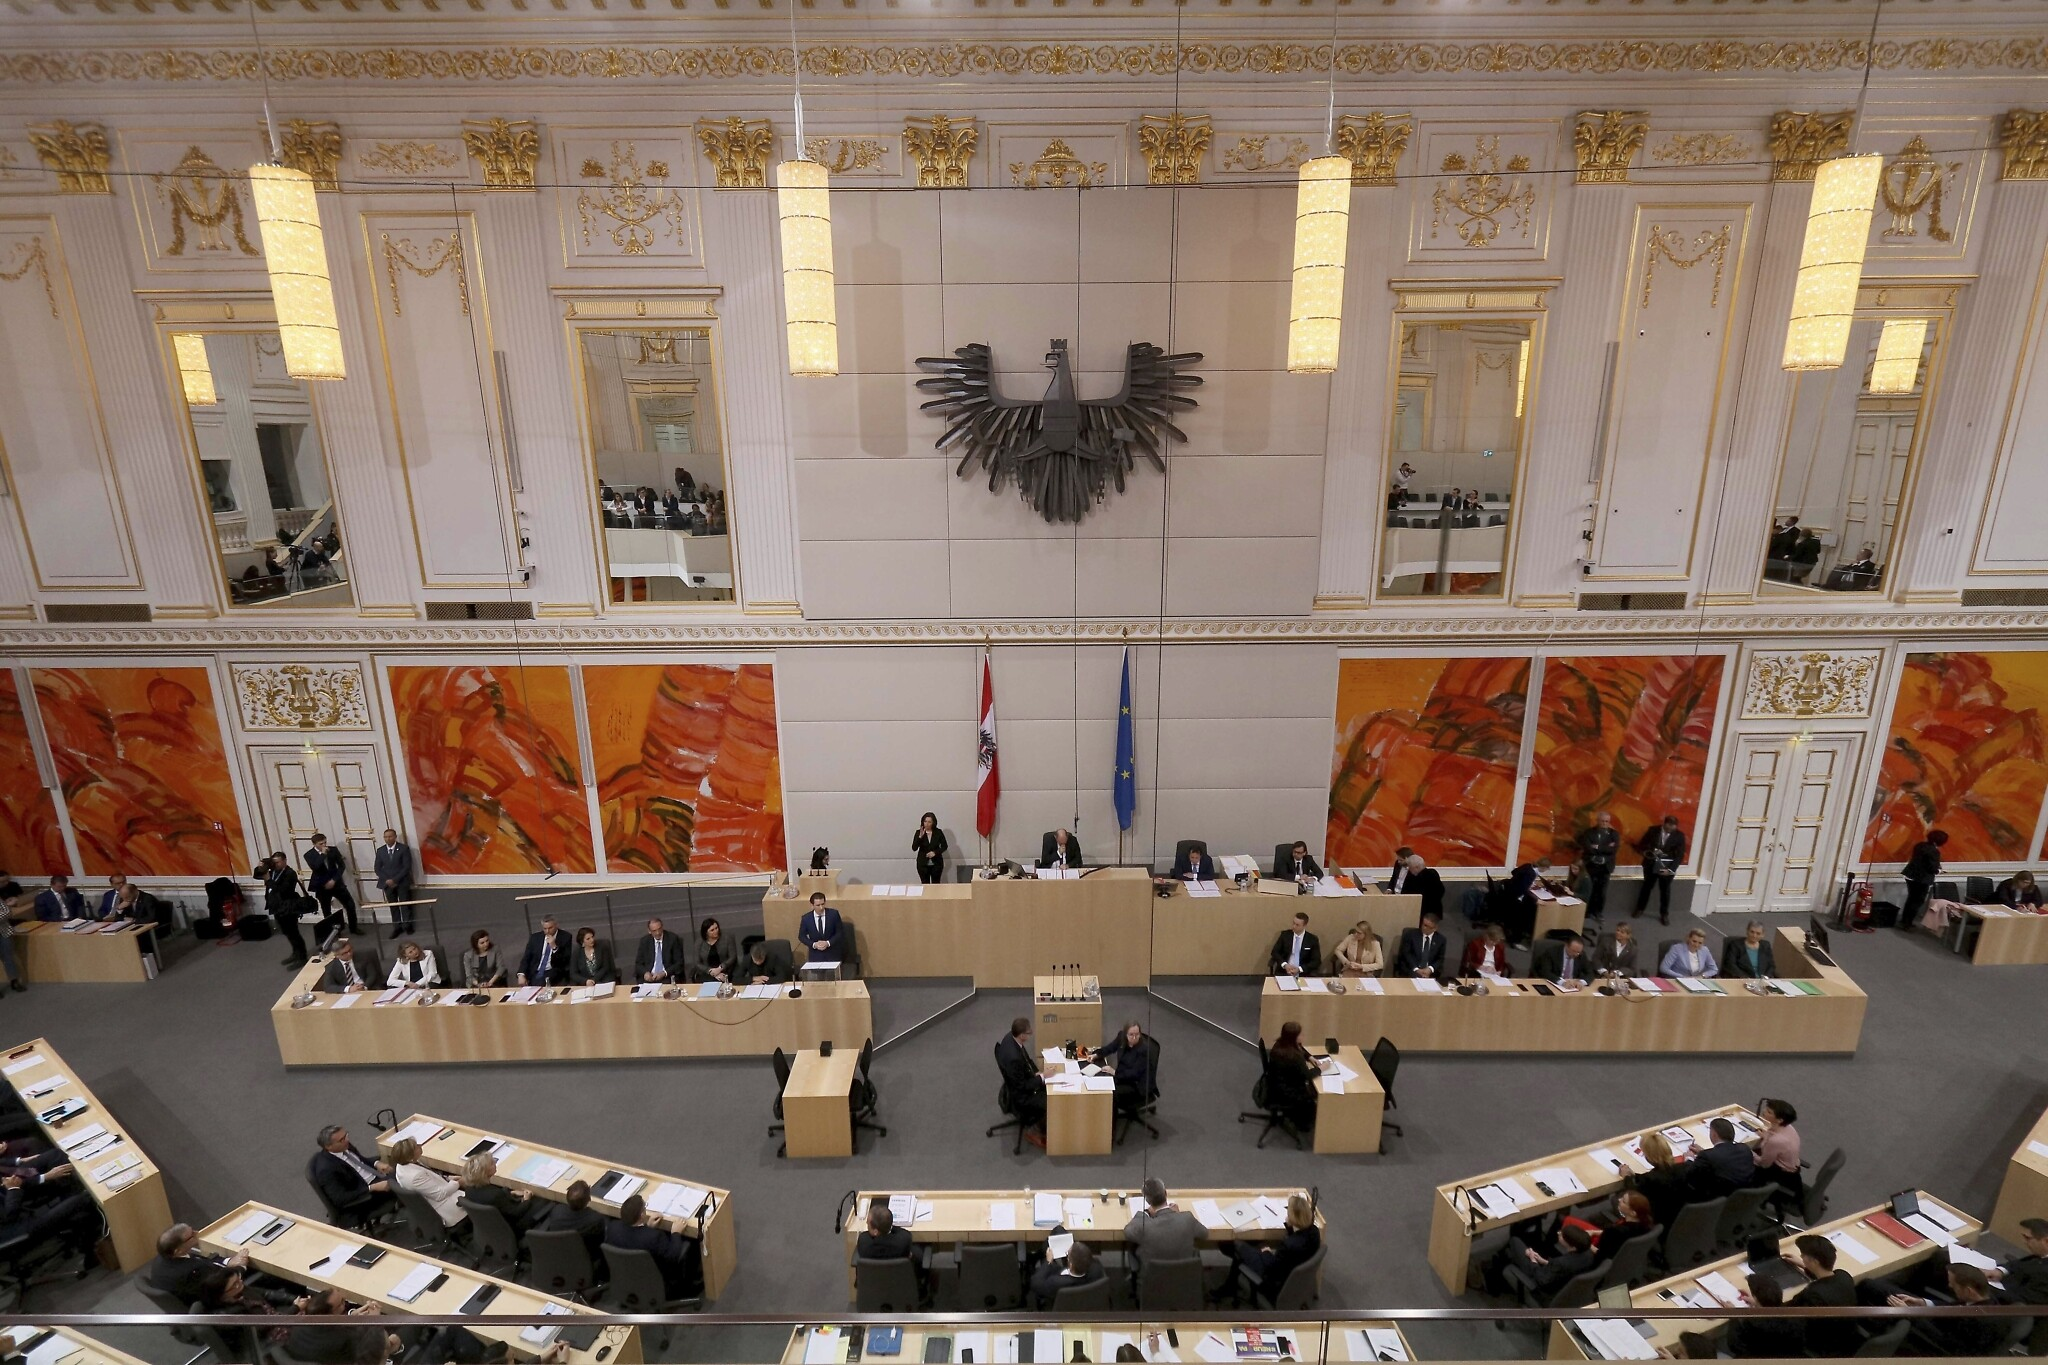 A resolution calling on the government of Austria to condemn the Boycott, Divestment, and Sanctions (BDS) movement against Israel was passed unanimously on Thursday by their parliament.